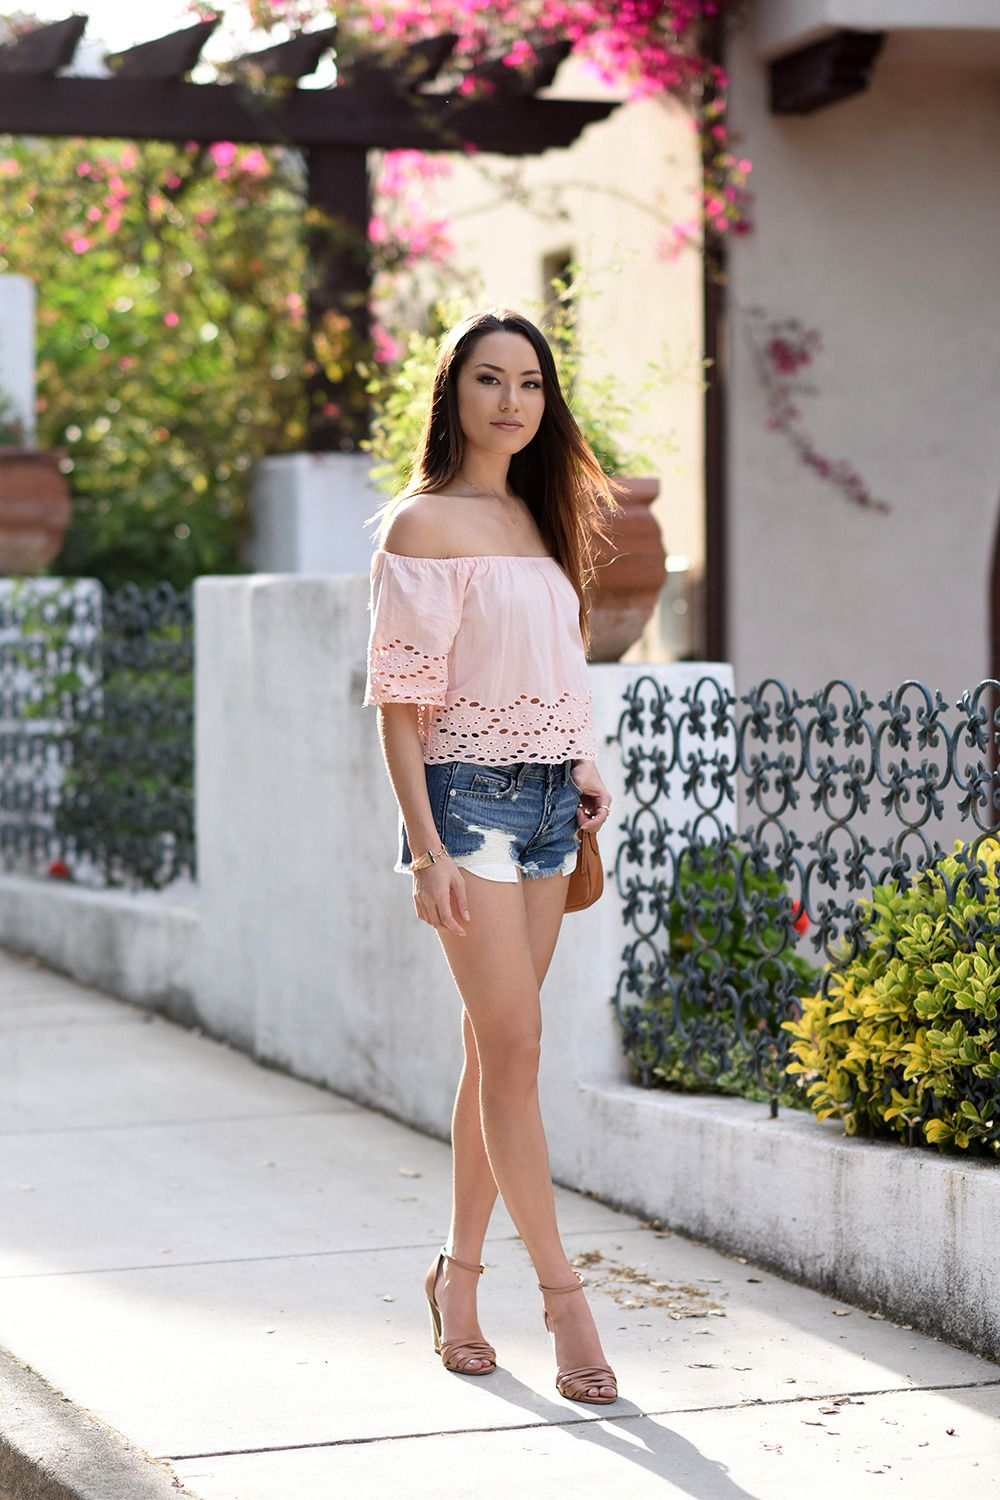 b0c10195b6fe7 Image result for pink off shoulder top outfit